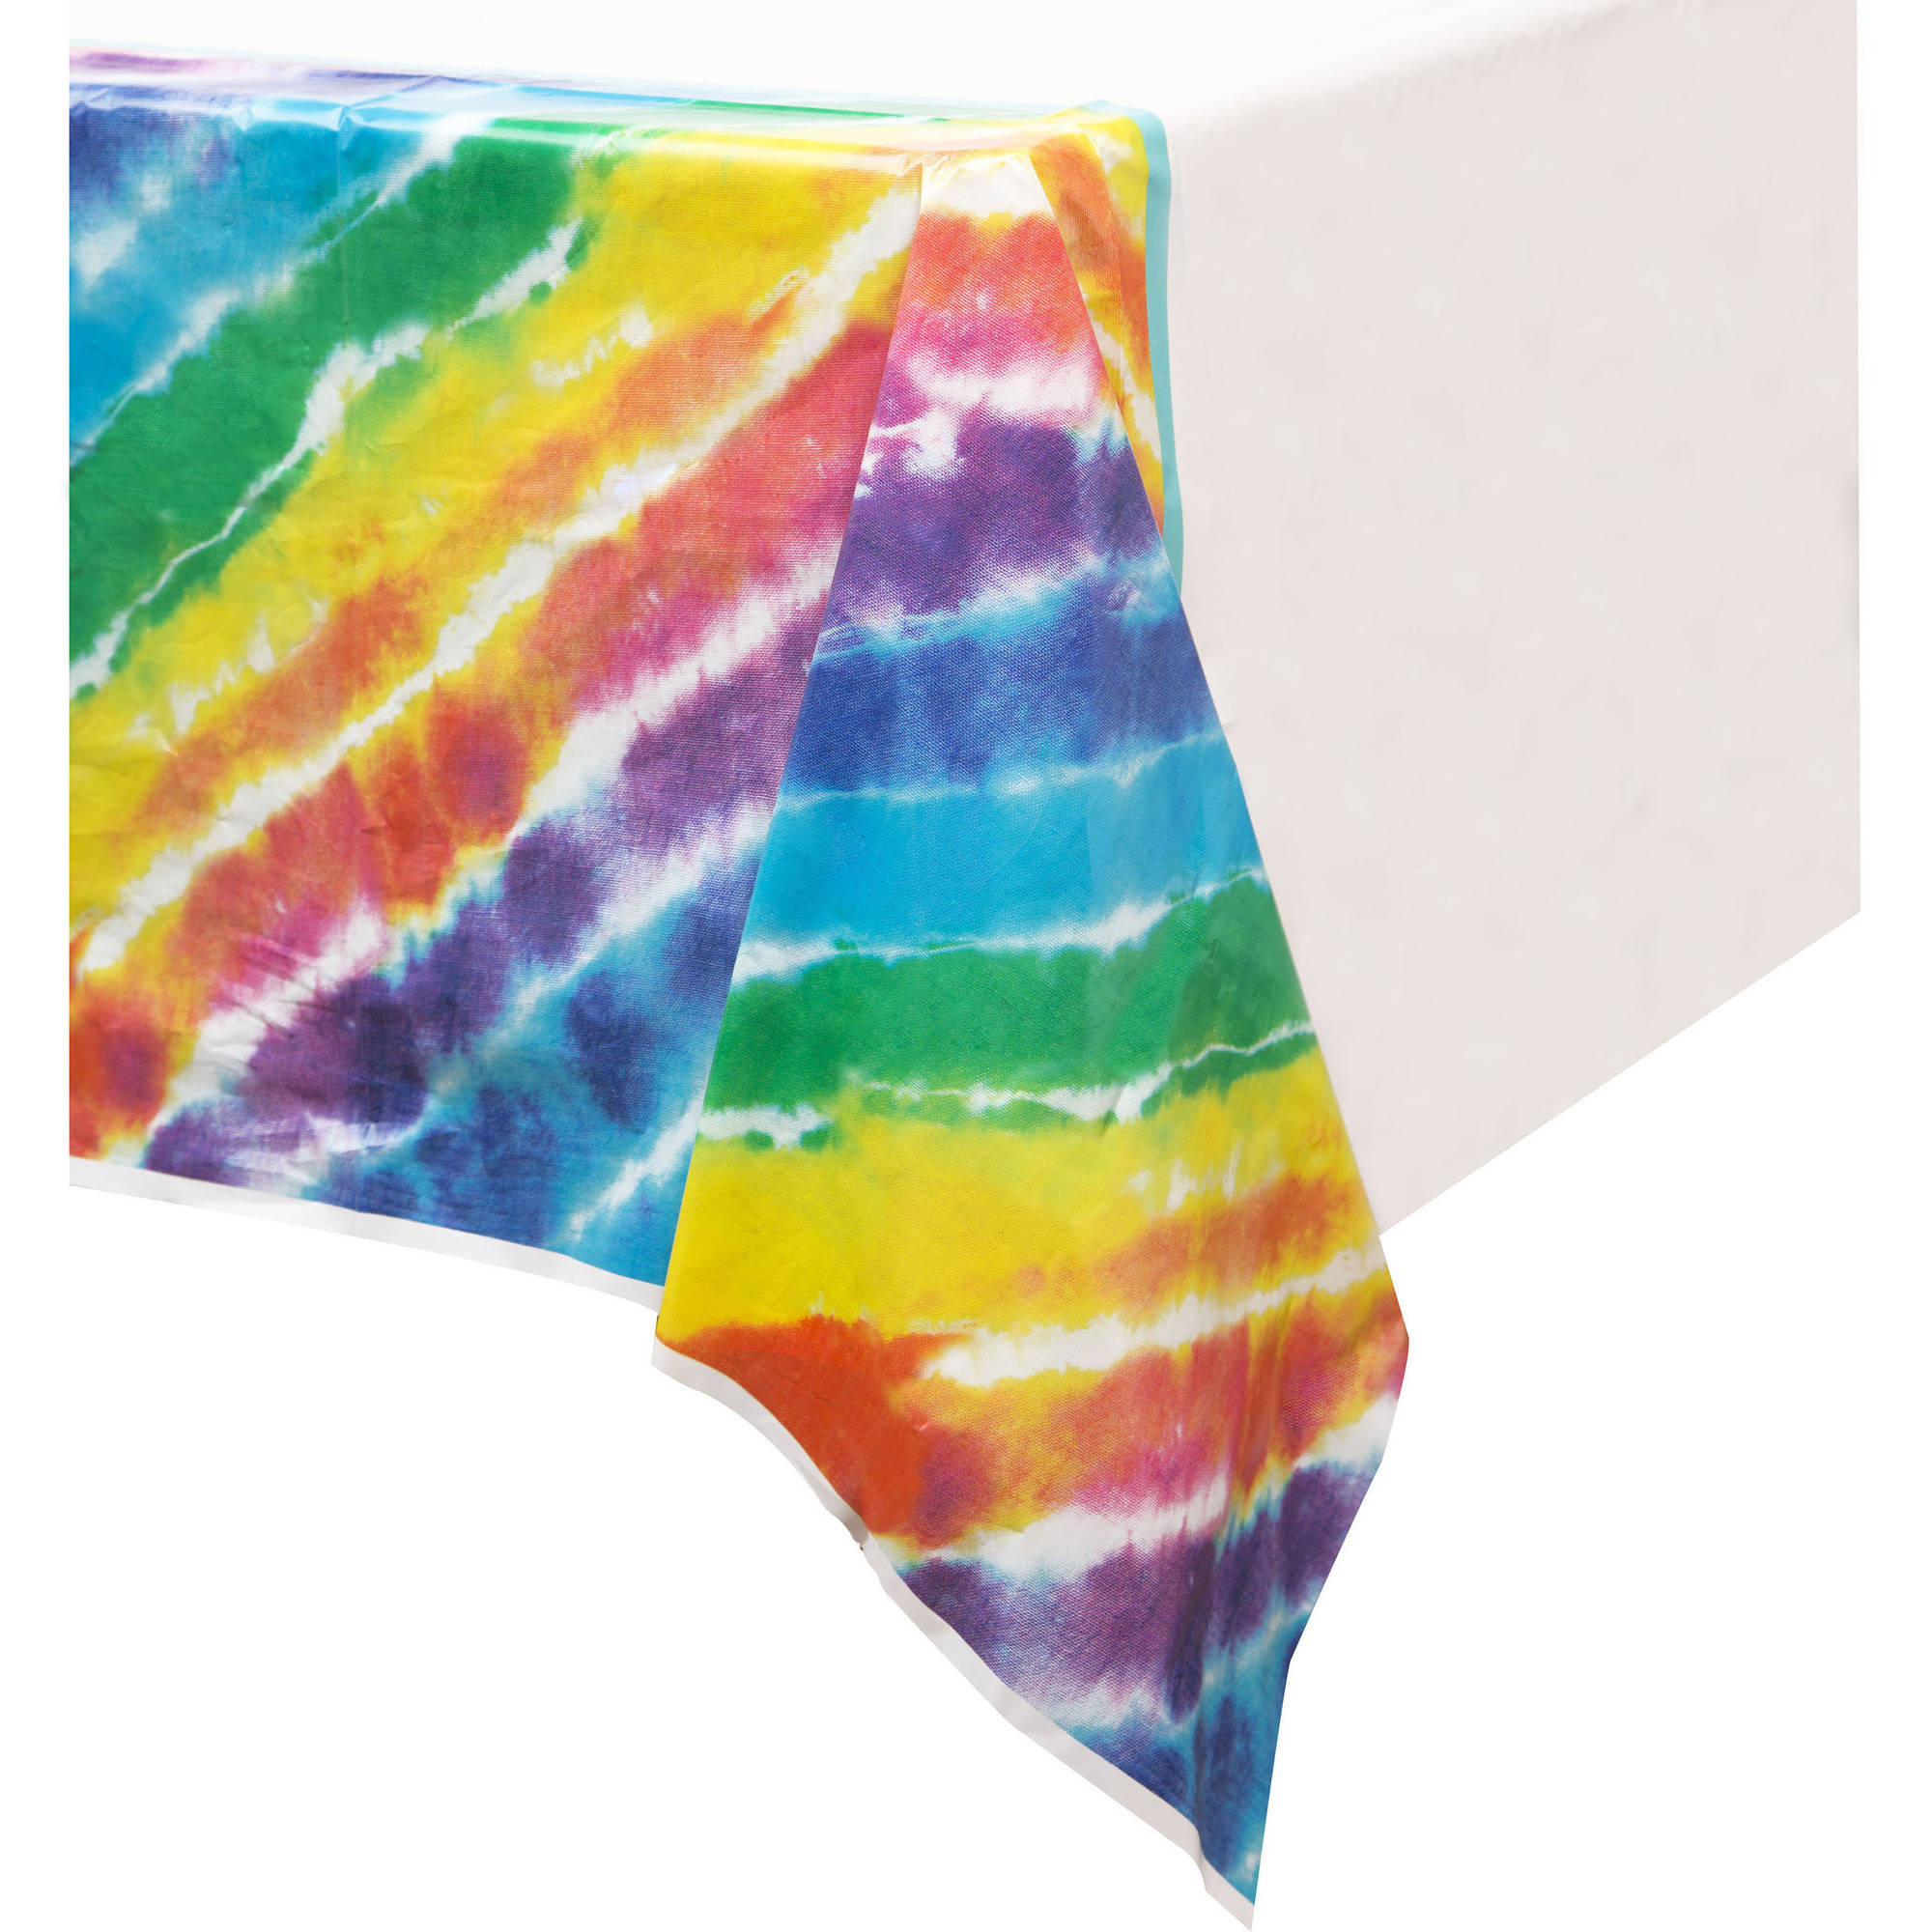 60% OFF: Tie Dye Printed Plastic Tablecover